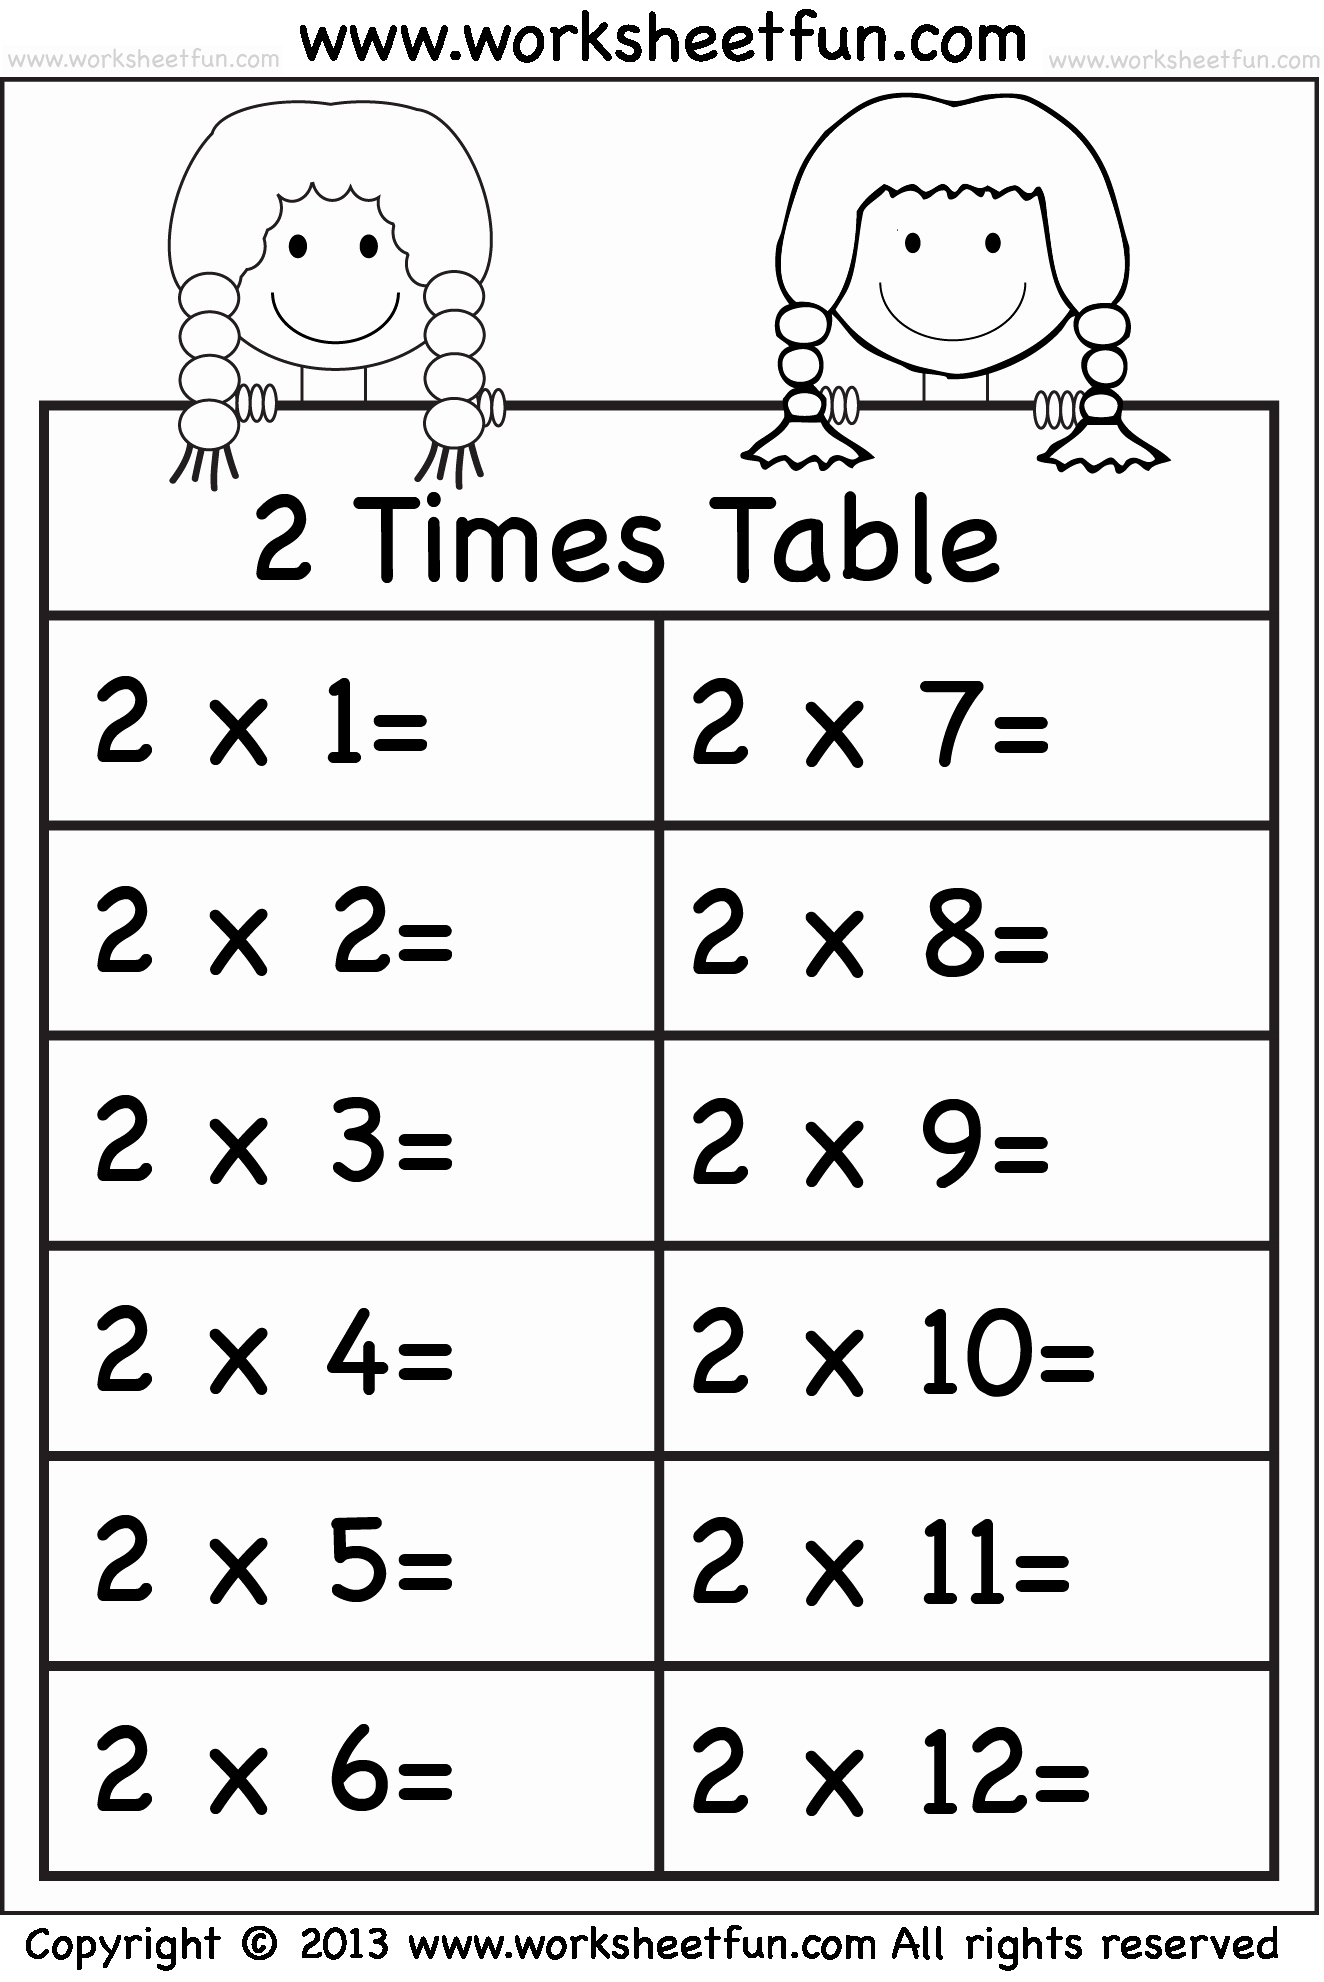 50 2 Times Table Worksheet